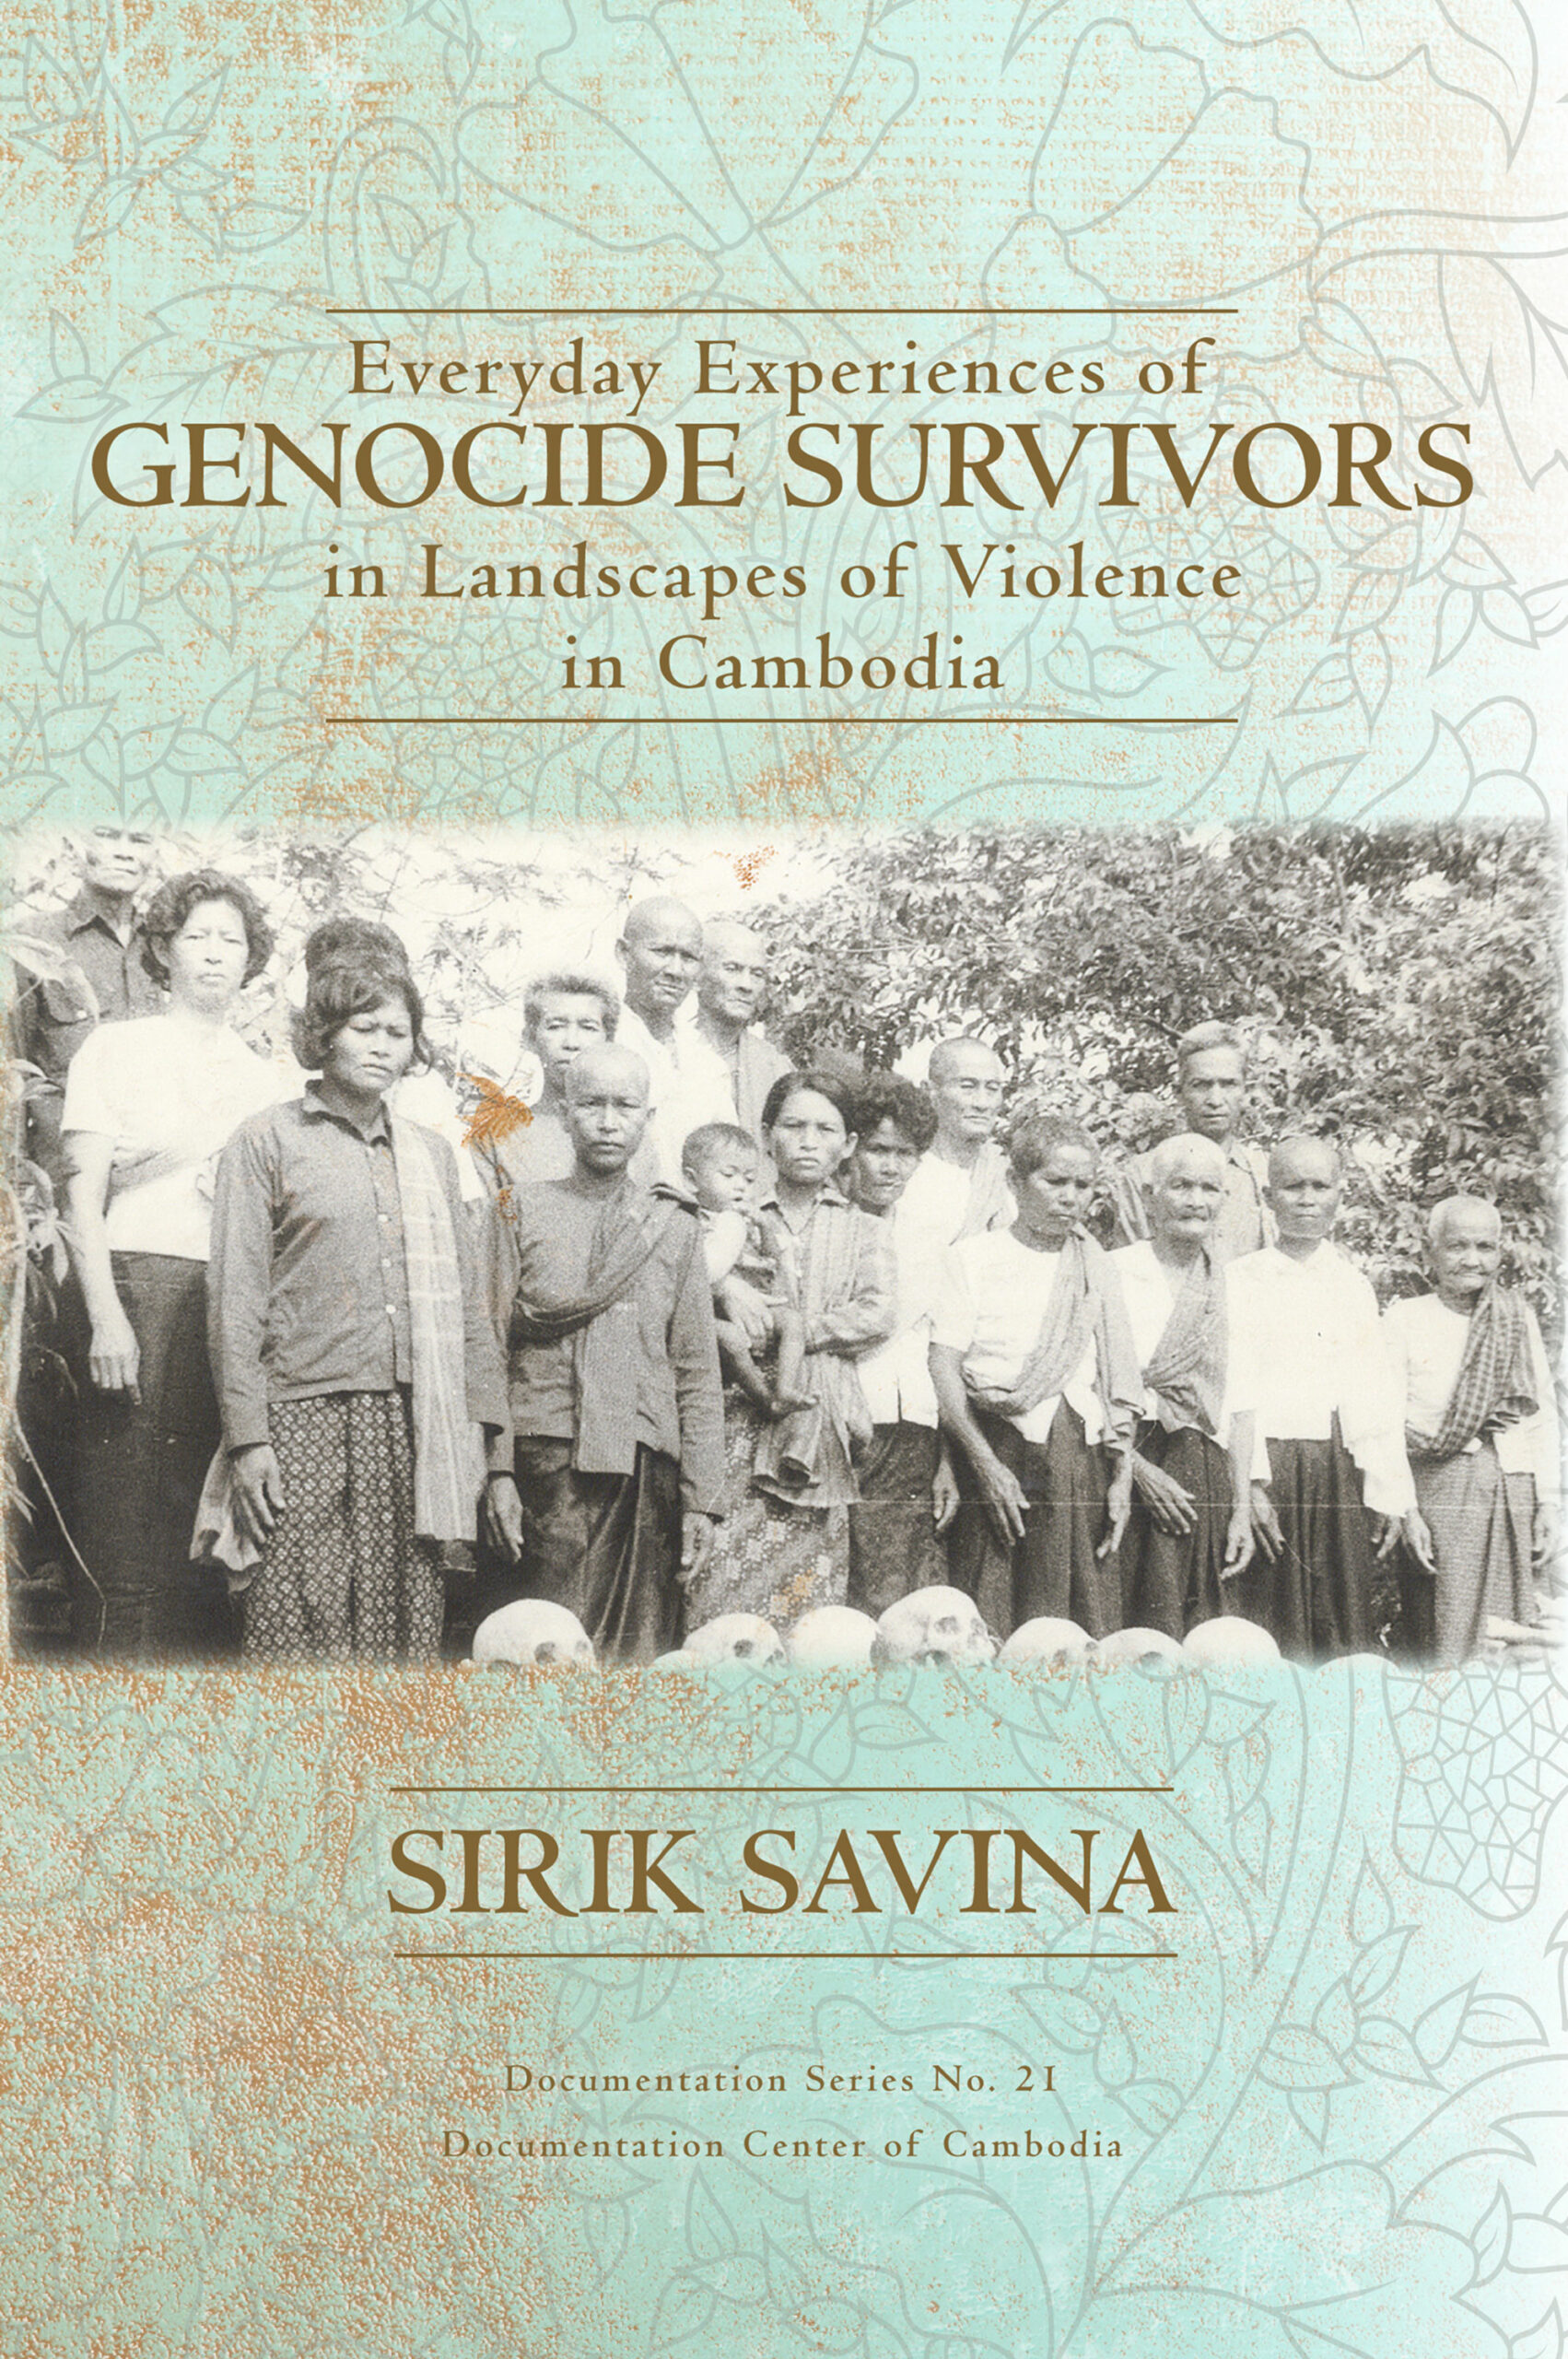 Everyday-experience-of-genocide-survivors1